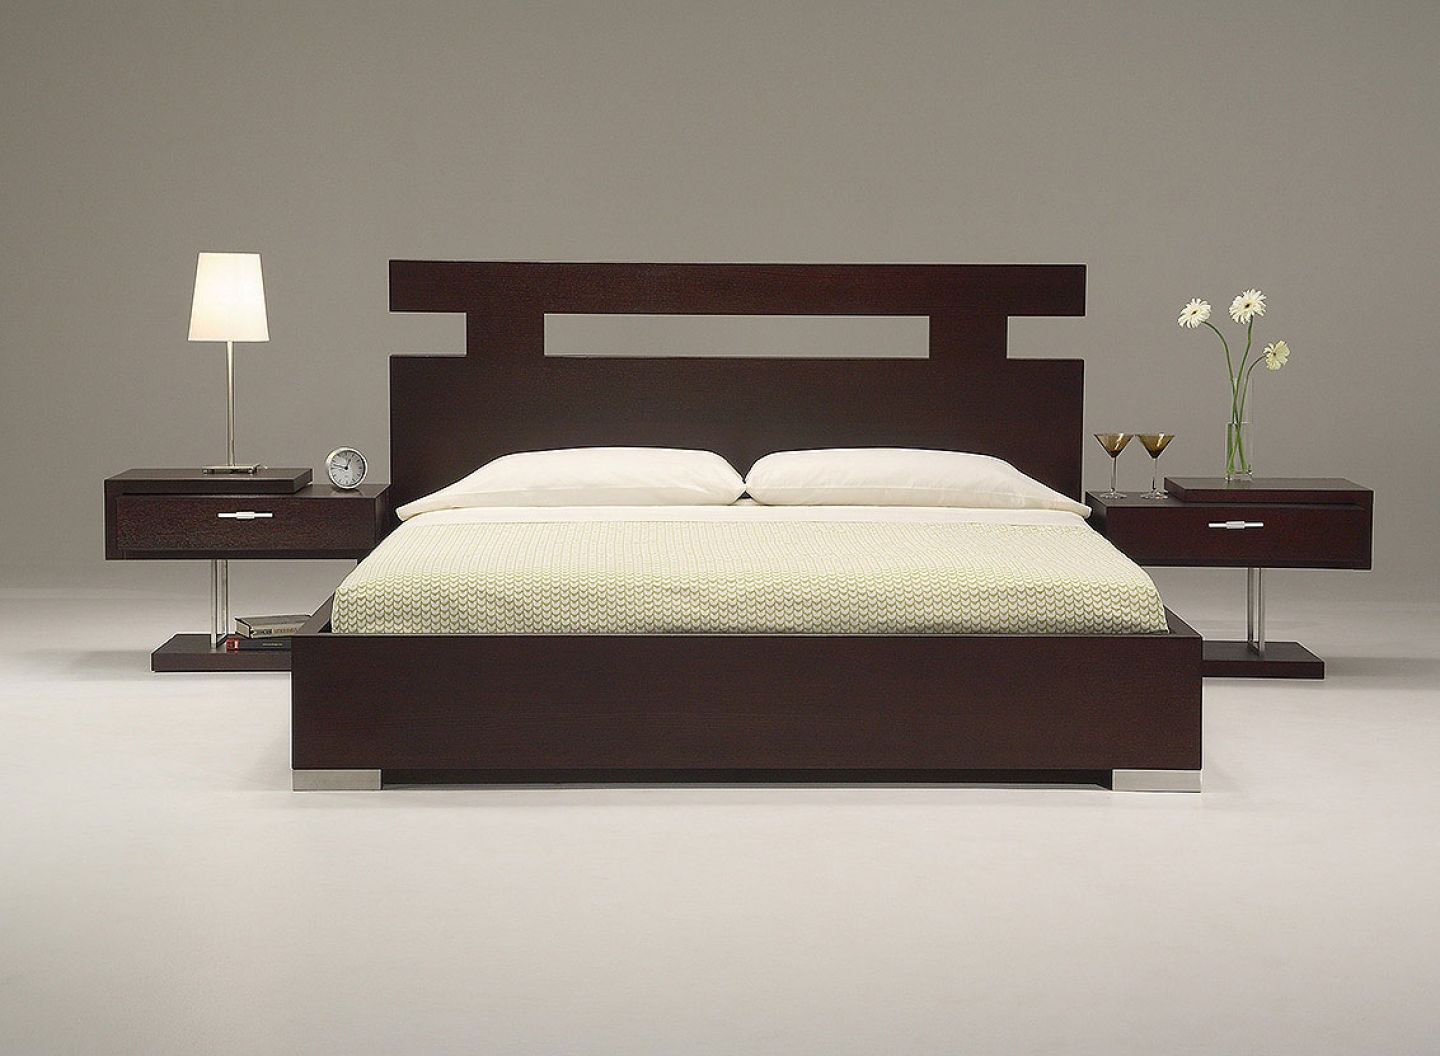 Image for Bed Designs For Master Bedroom